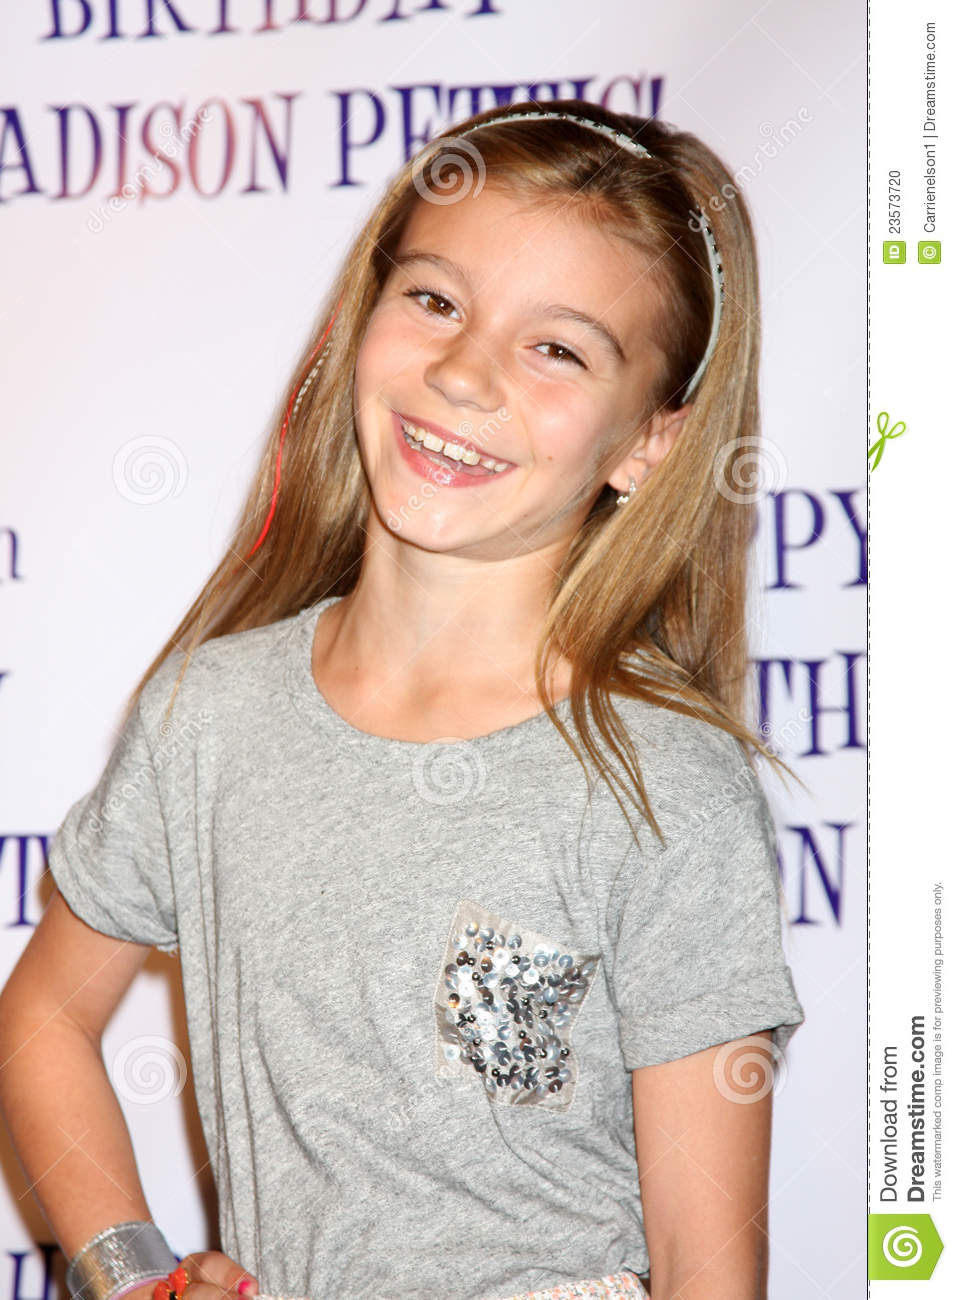 1000+ images about | | G.Hannelius | | on Pinterest | G hannelius, Dog ...